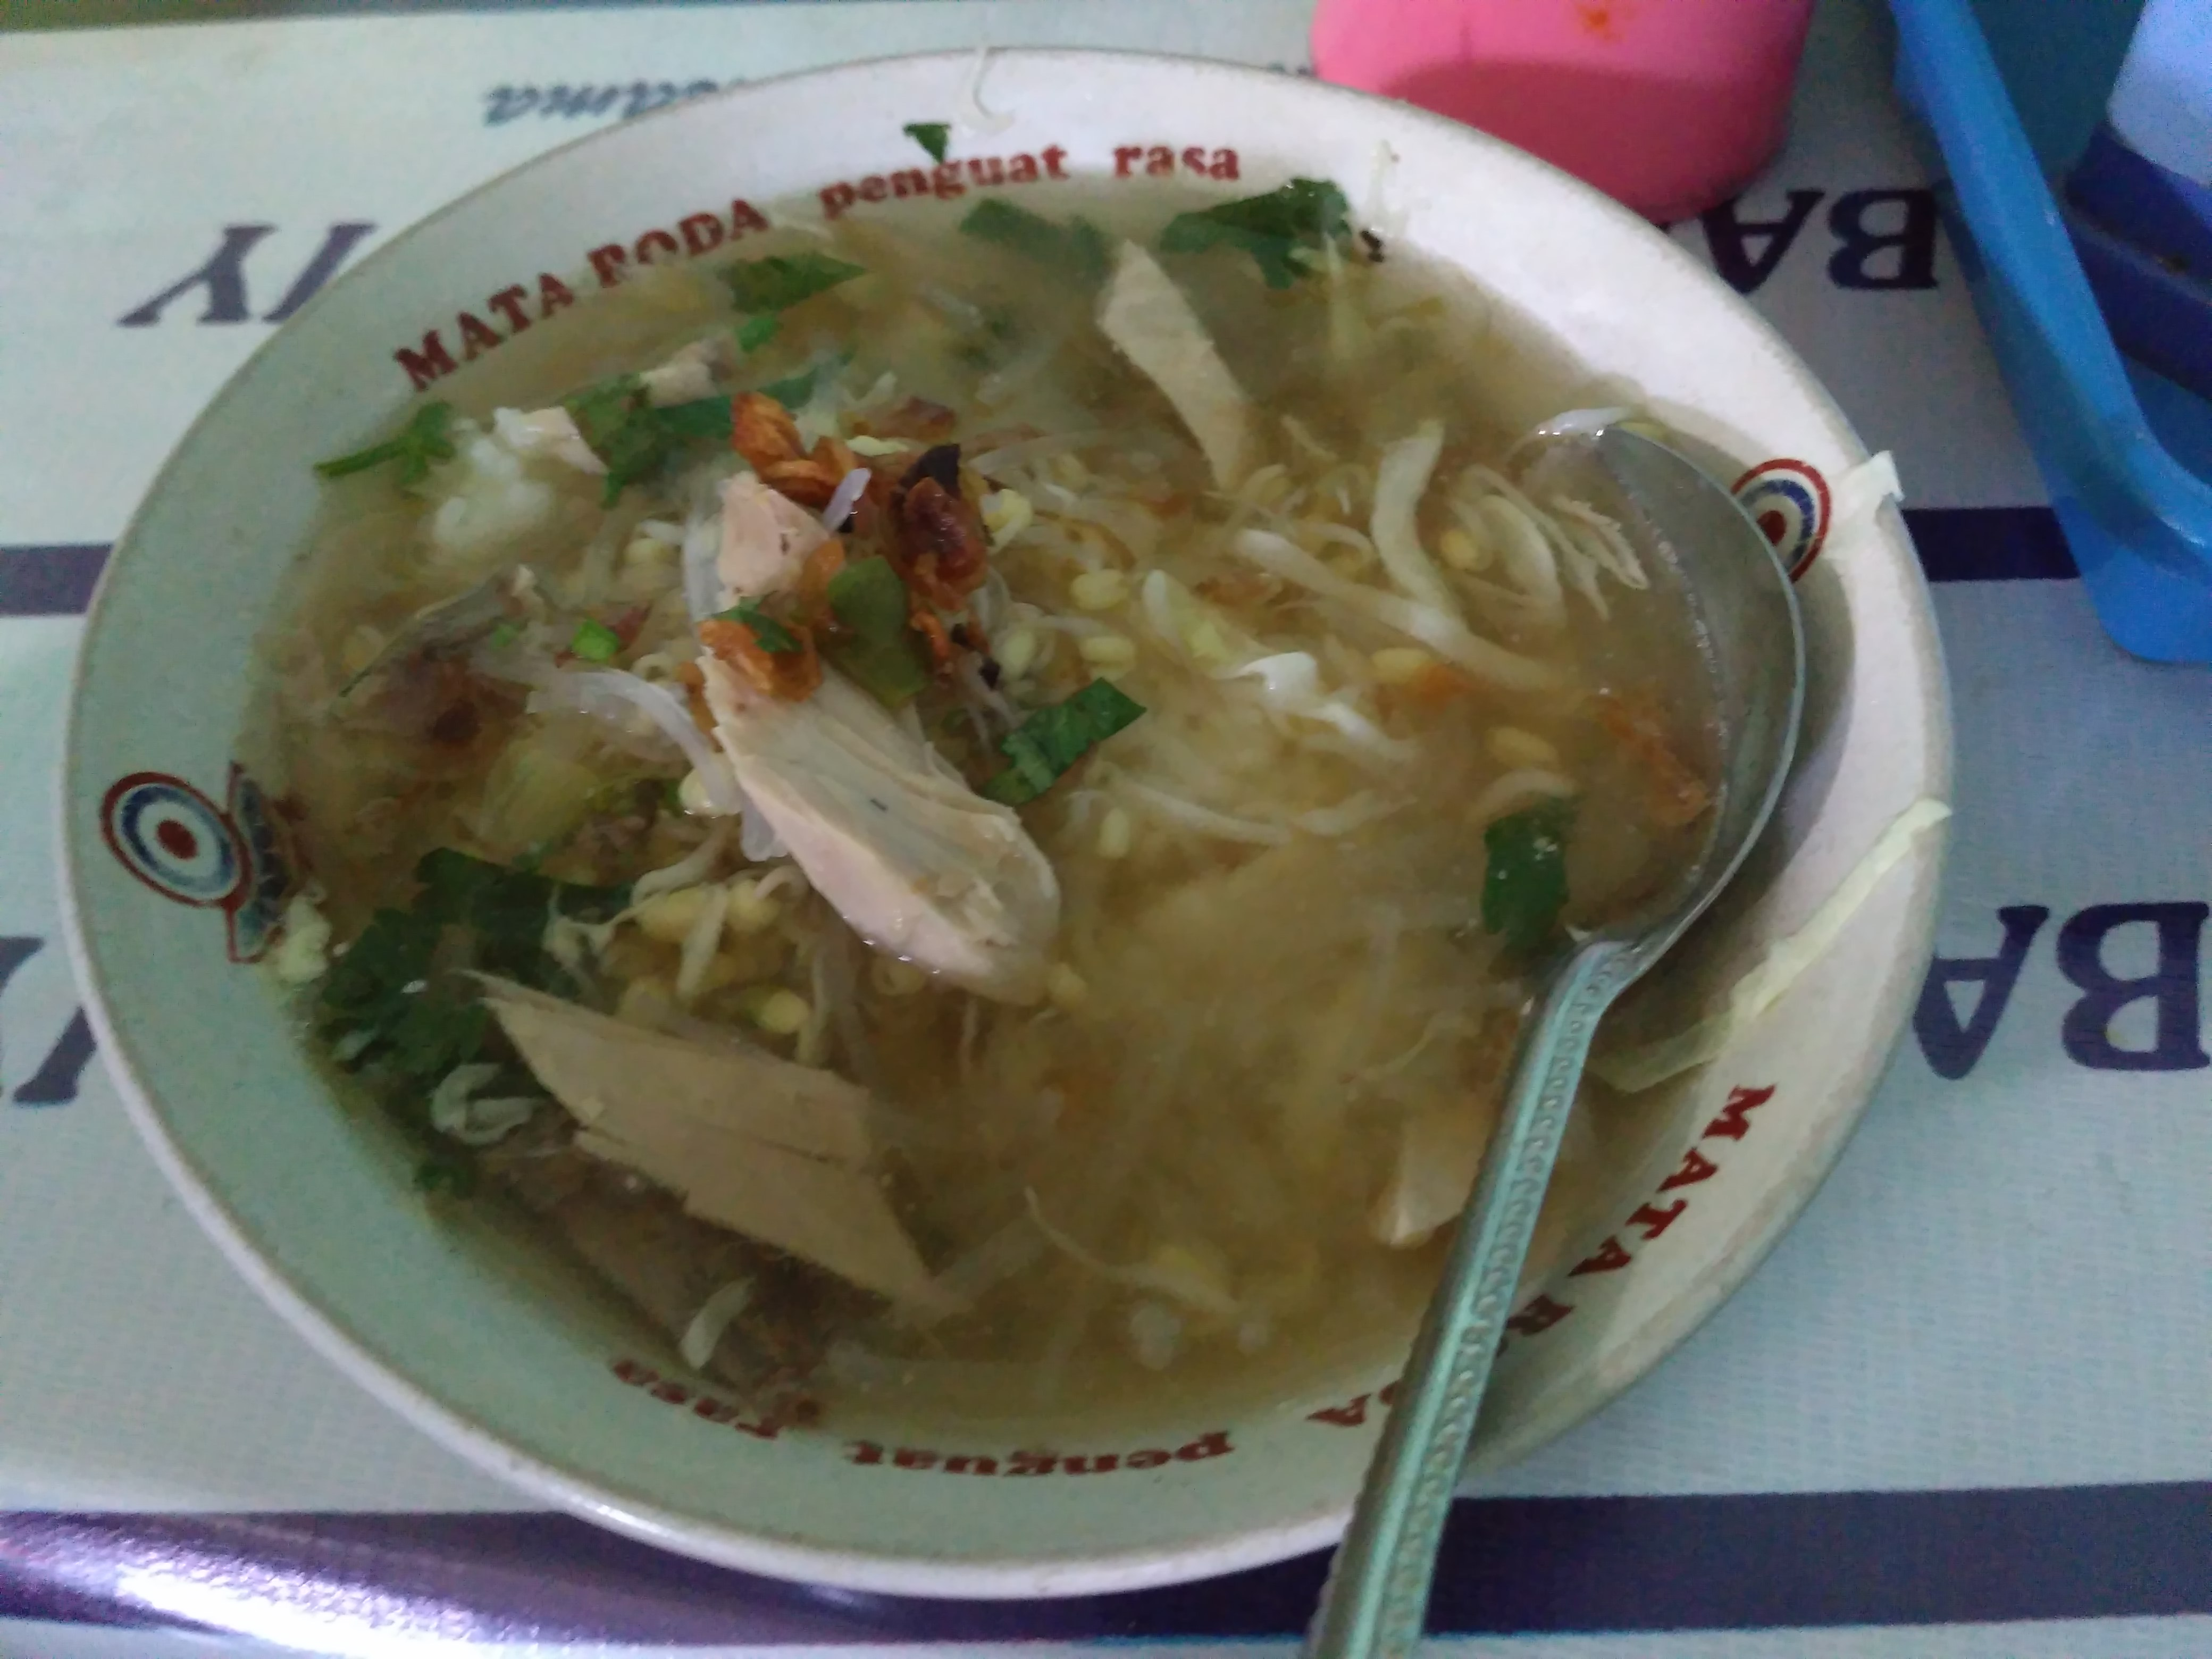 Nyoto Pagi [at] Soto Pak Blo'on Bantul